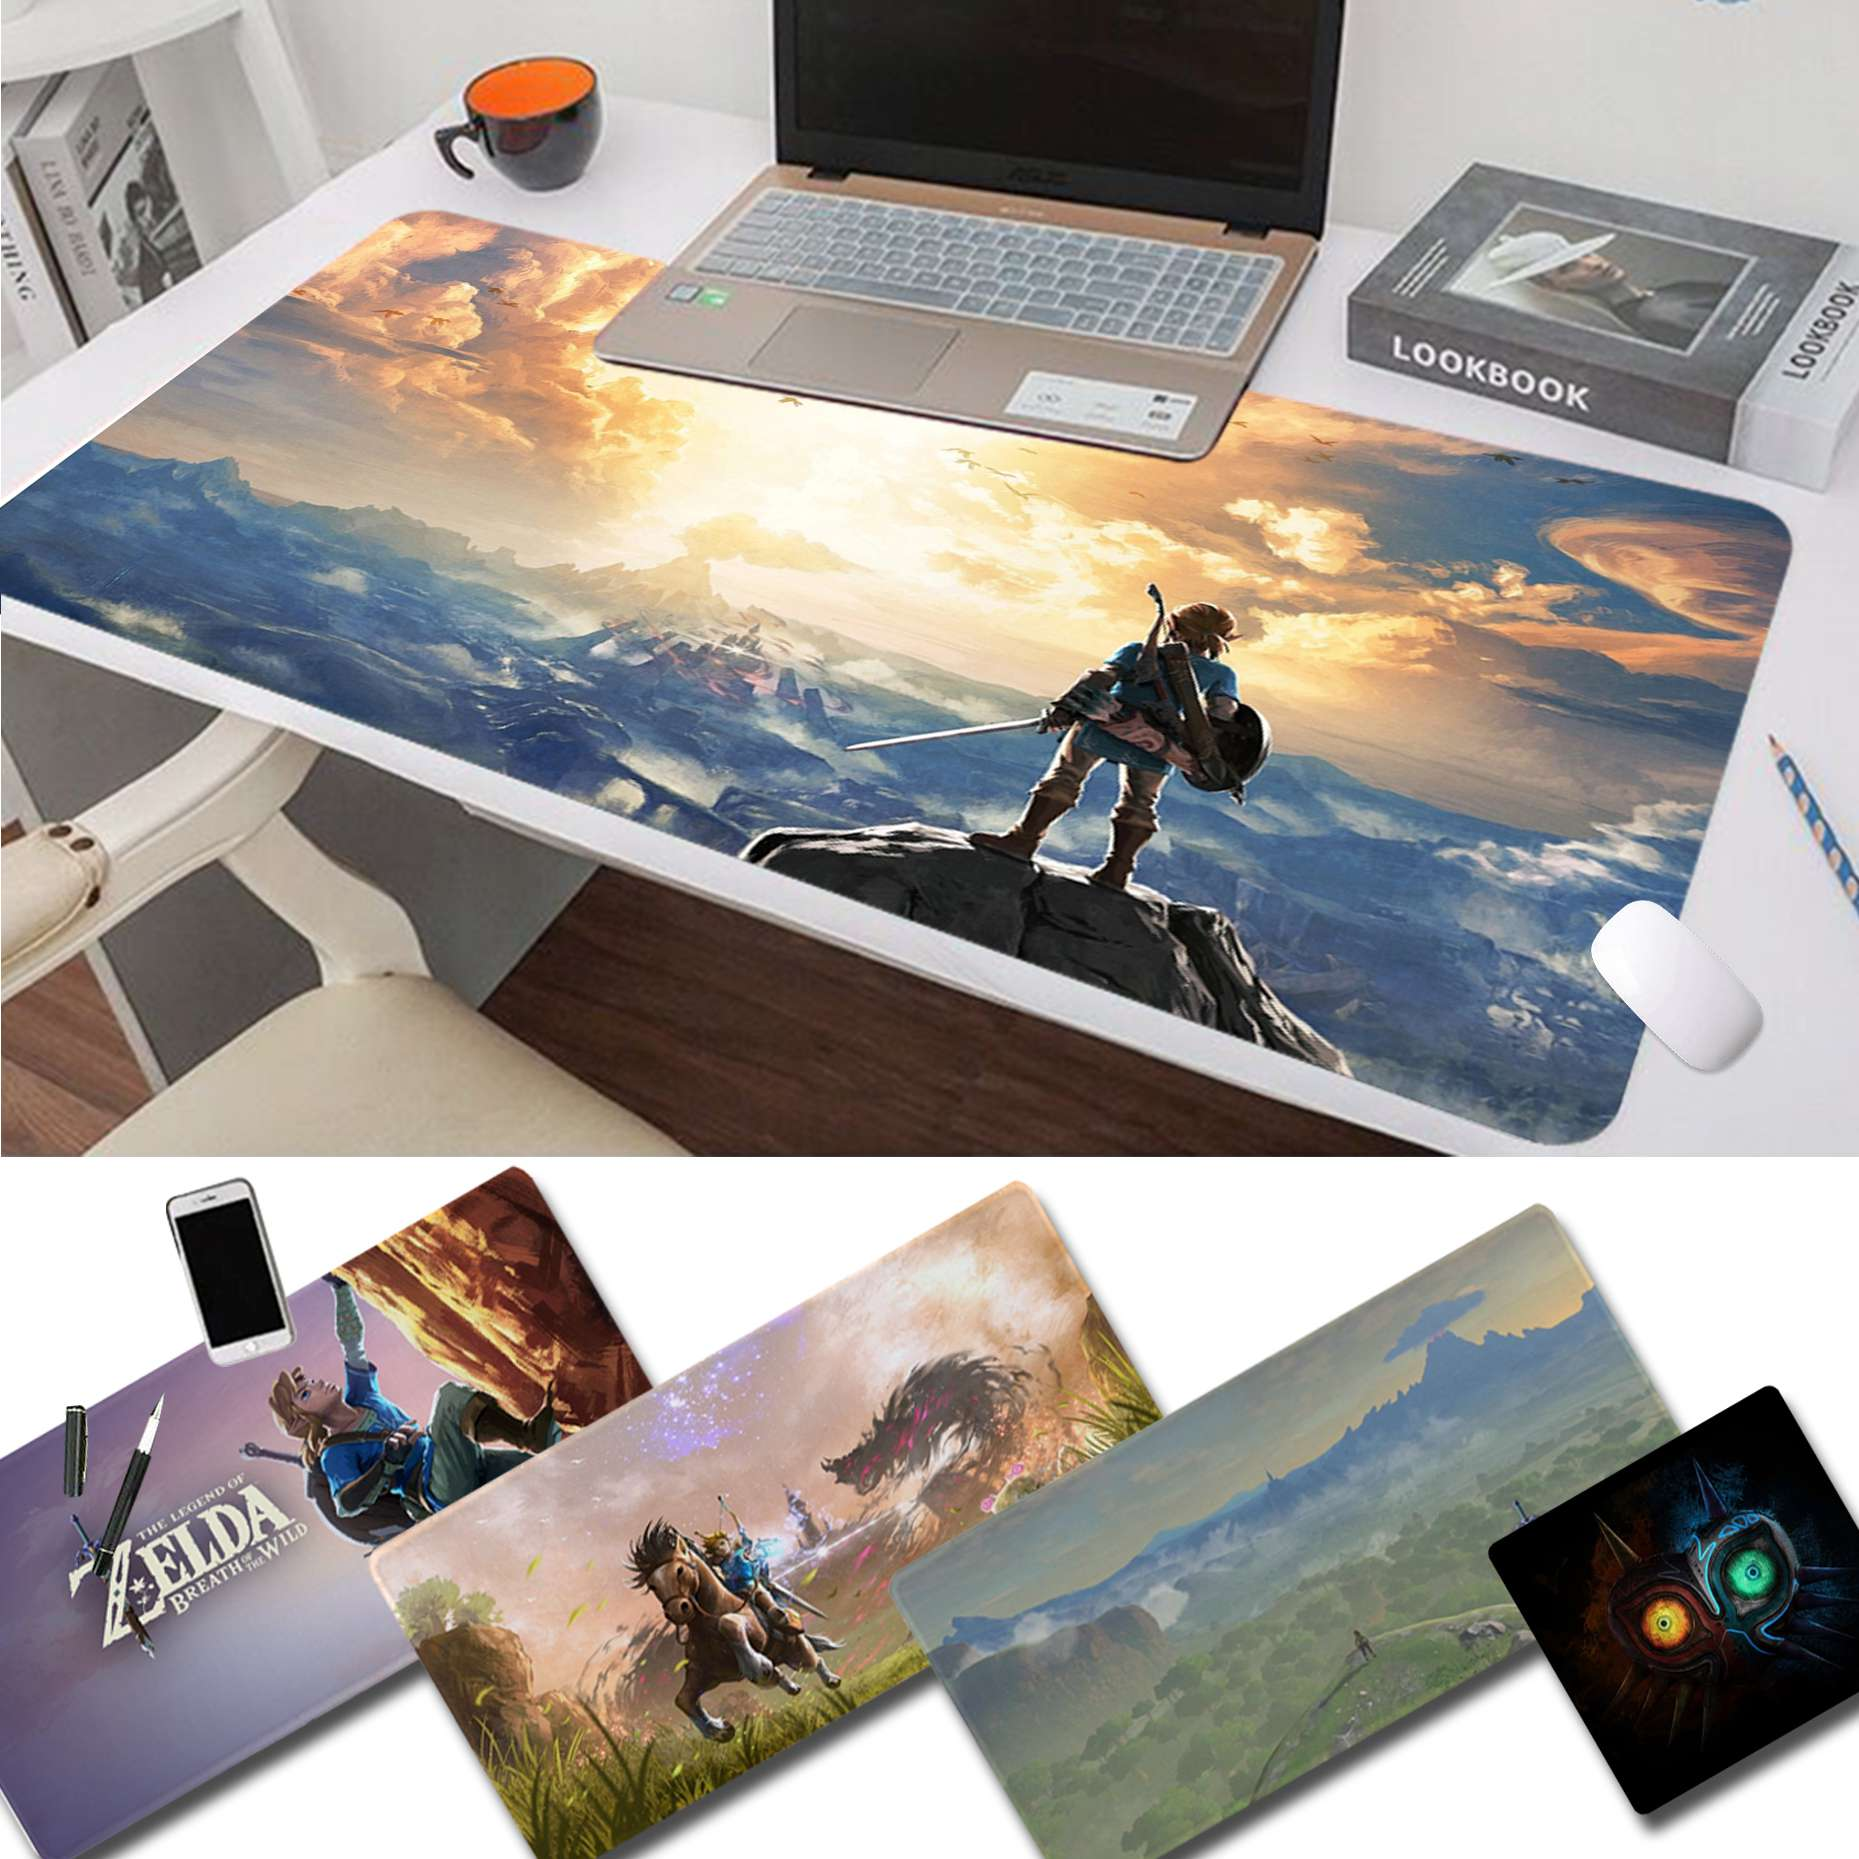 Maiya The Legend Of Zelda Breath Of The Wild Gamer Speed Mice Small Rubber Mousepad Free Shipping Large Mouse Pad Keyboards Mat